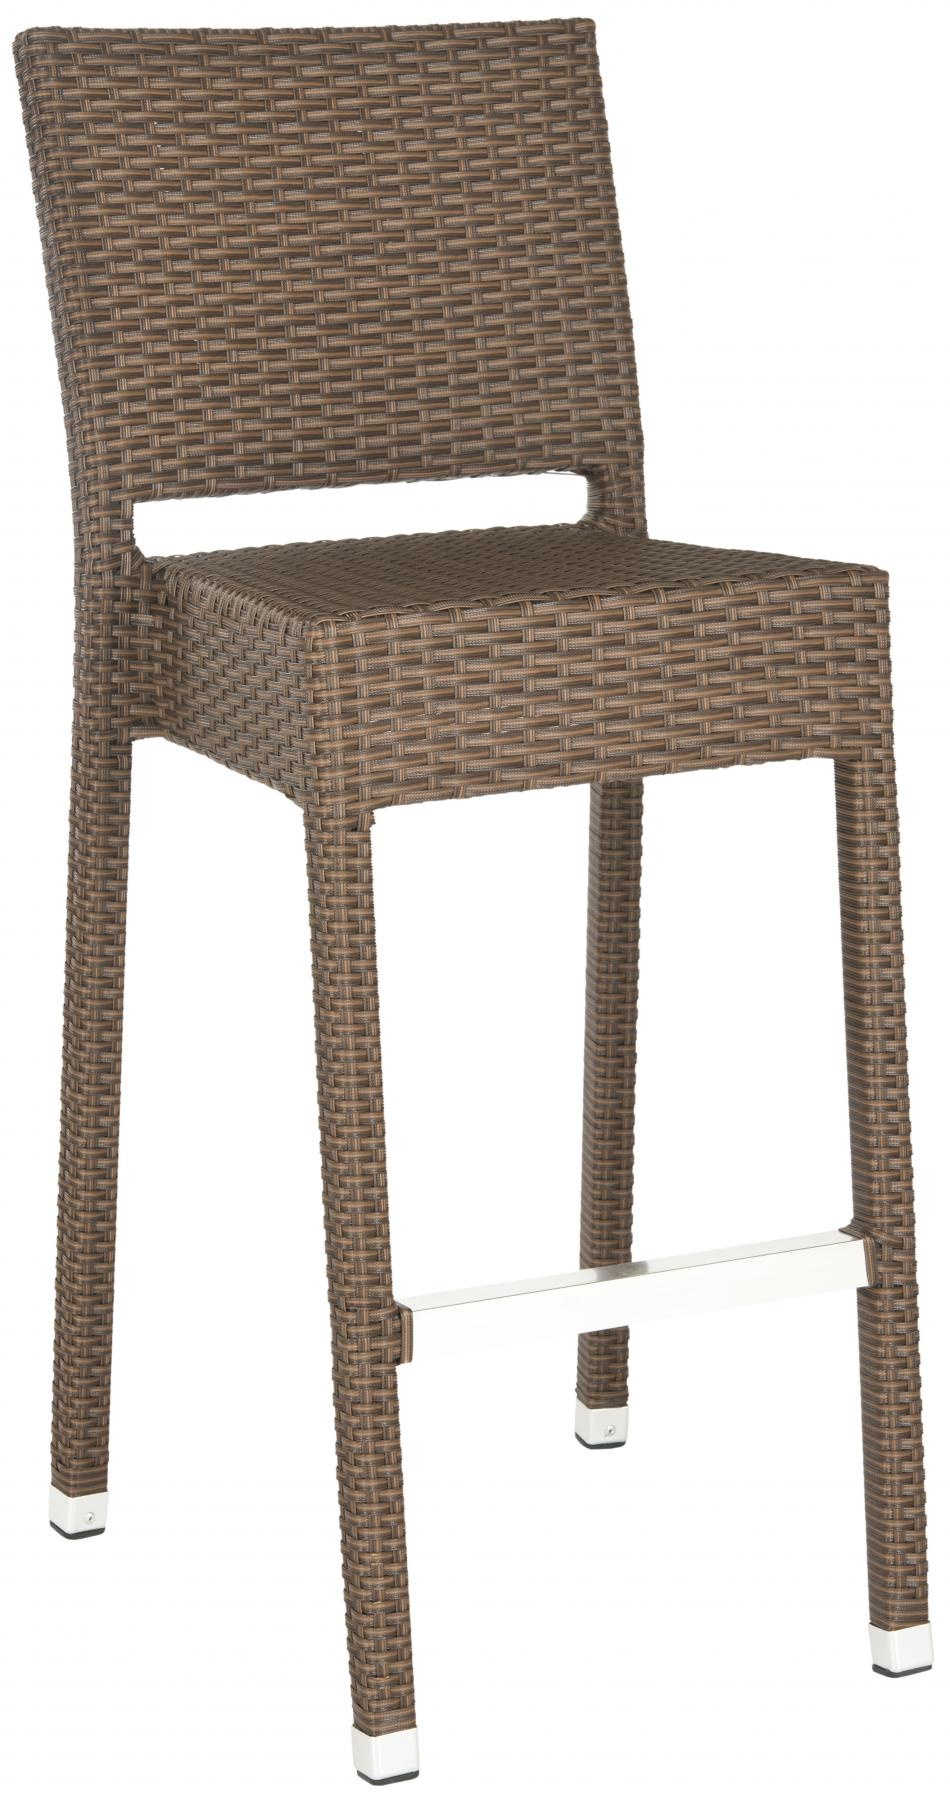 Safavieh - FOX5201B BETHEL INDOOR-OUTDOOR BAR STOOL